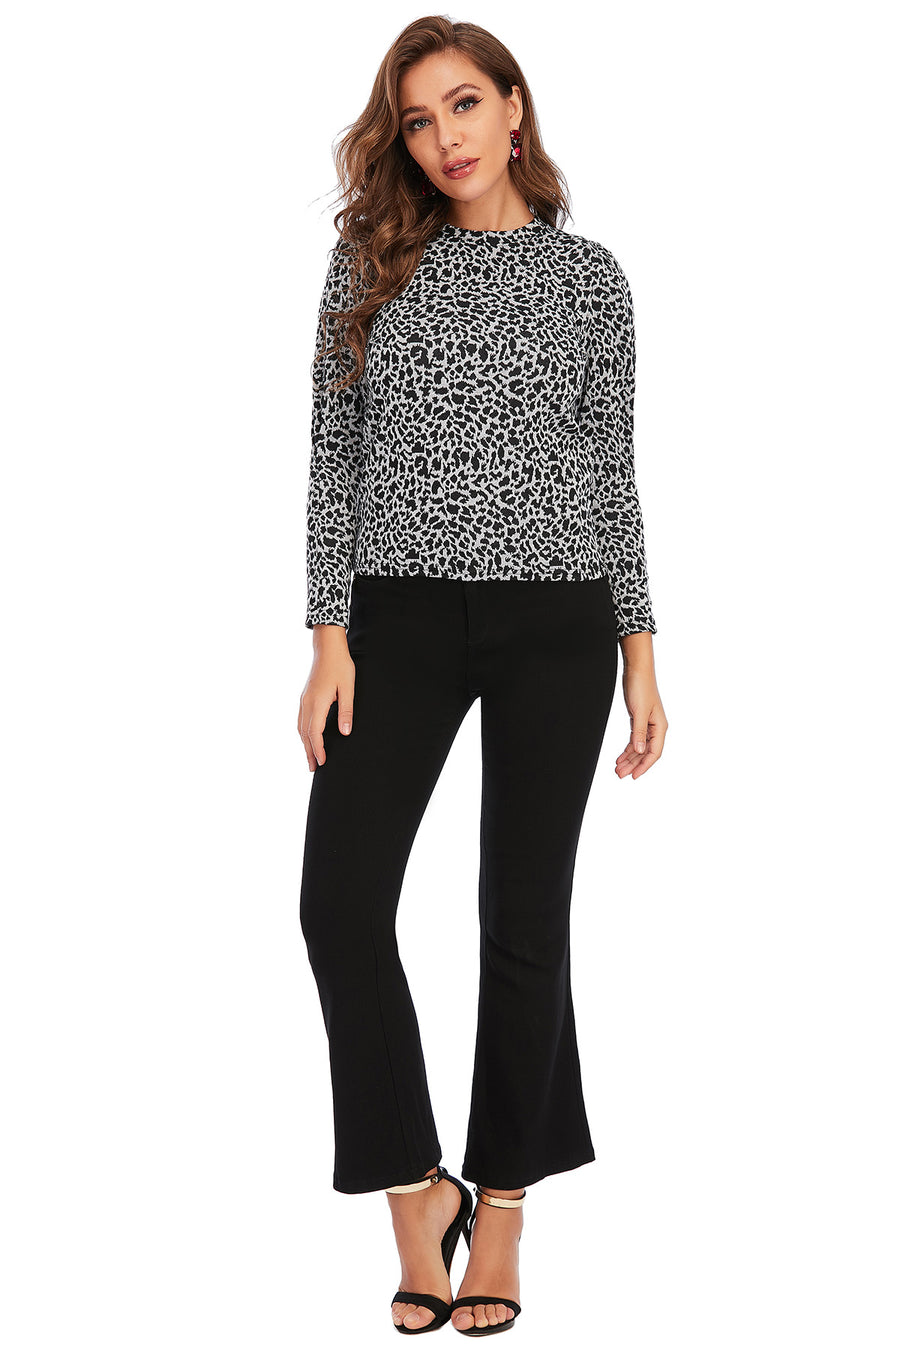 Mantra Pakistan CHEETAH Puffy SLEEVES TOP | Western Wear